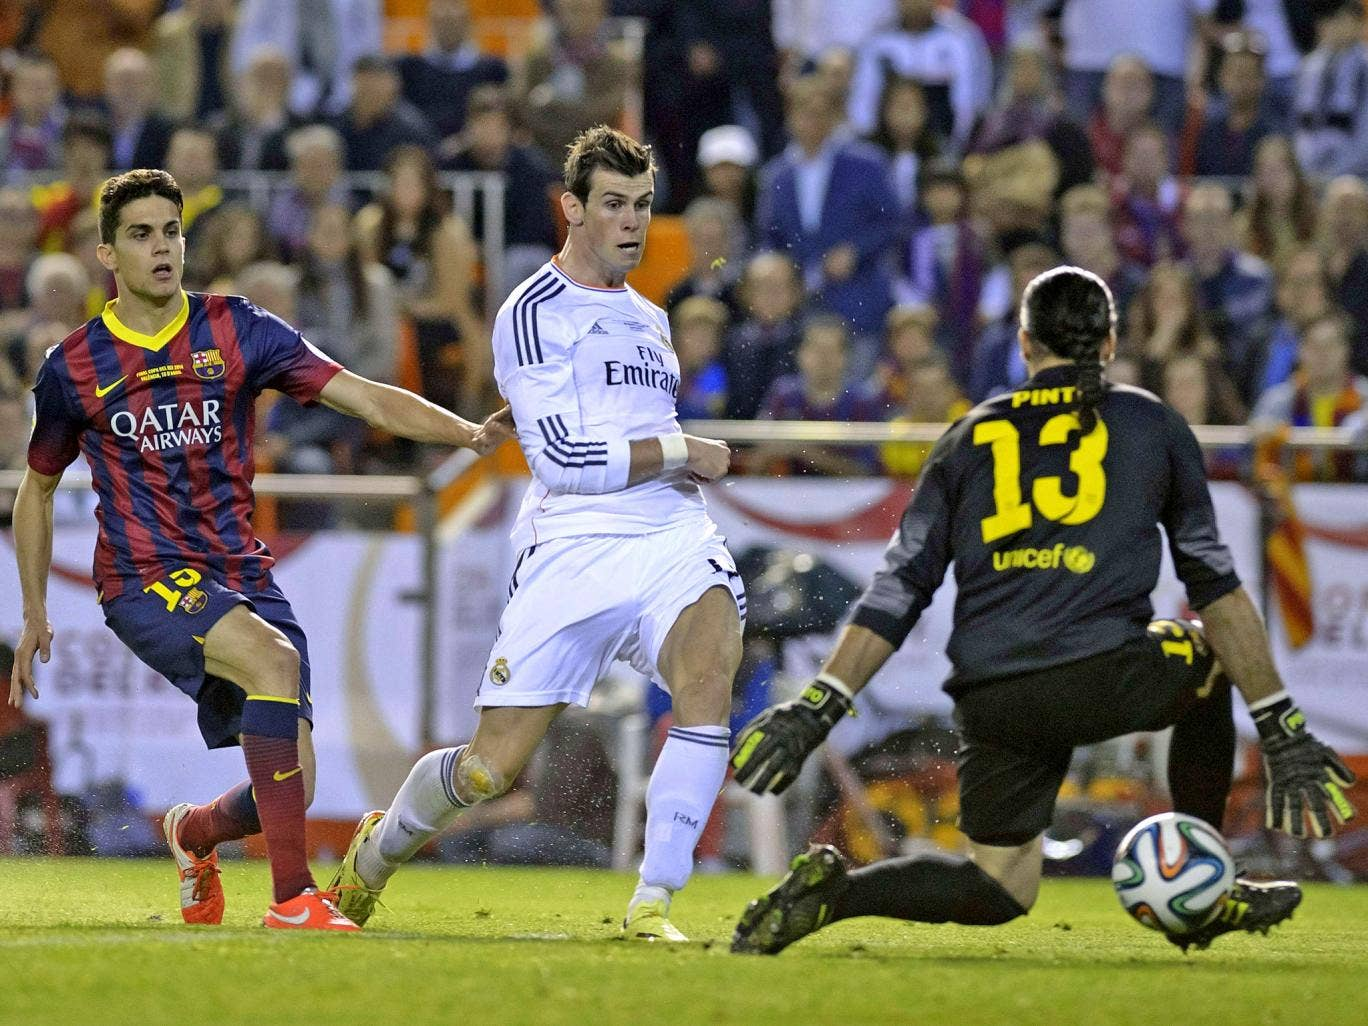 Gareth Bale dribbled from inside his own half and finished calmly late in the final to hand Real a 2-1 win at the Mestalla in Valencia